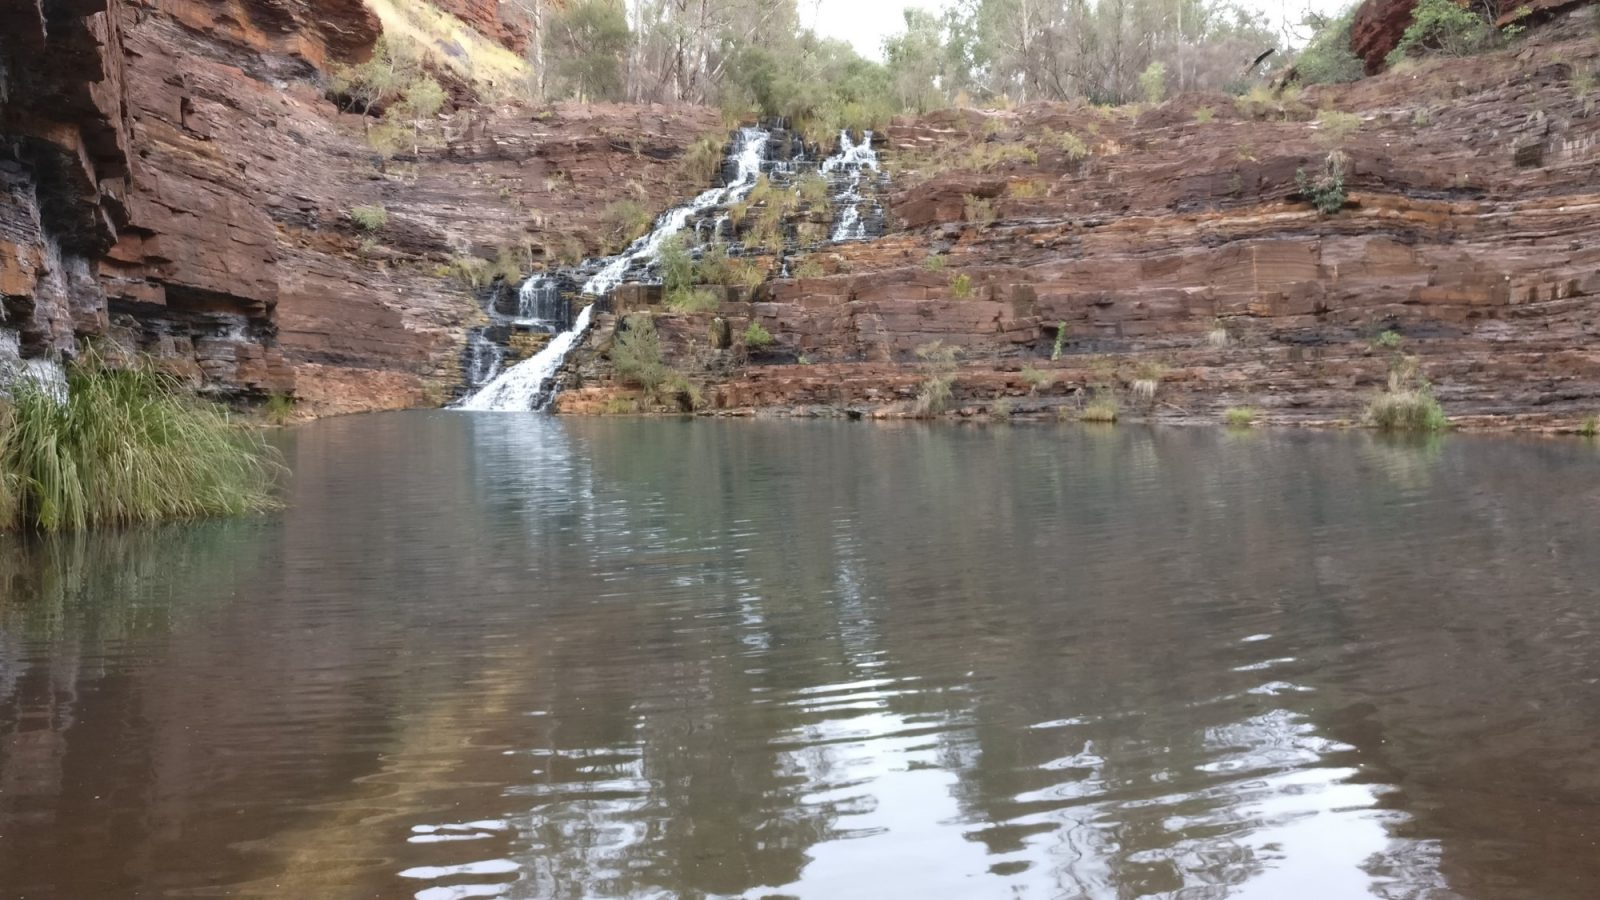 Fortescue Falls cascade